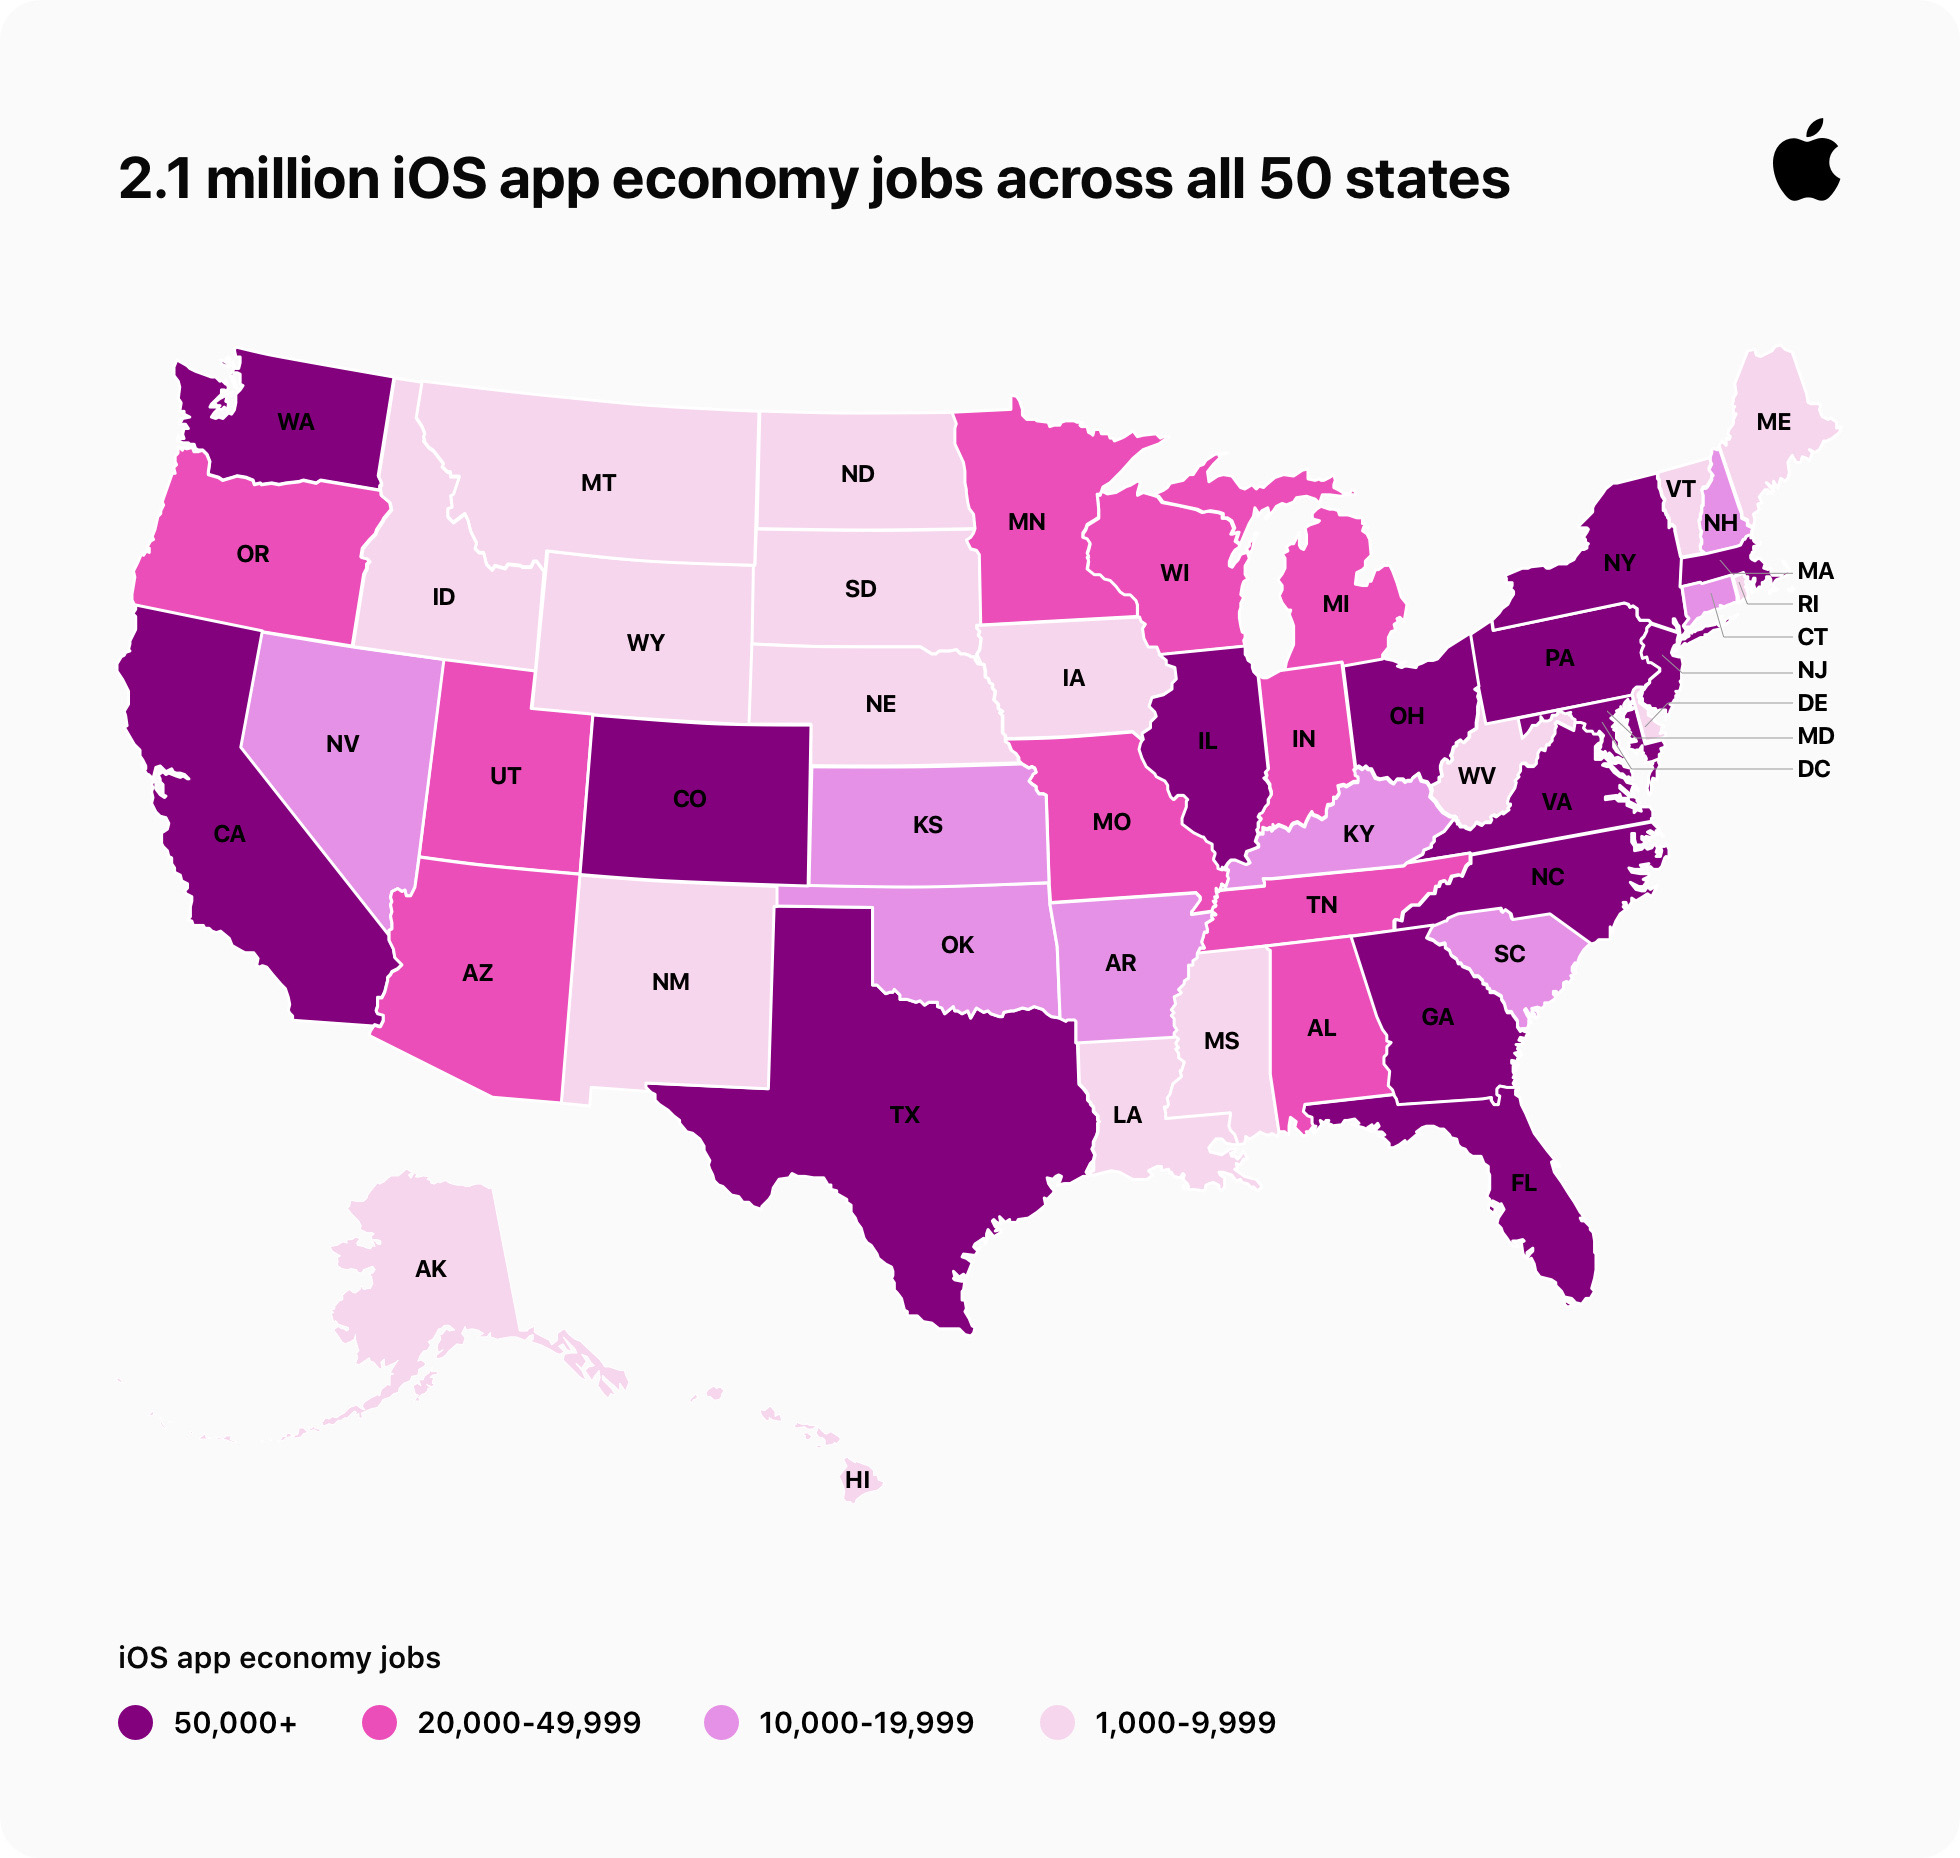 Infographic of app economy jobs in the United States